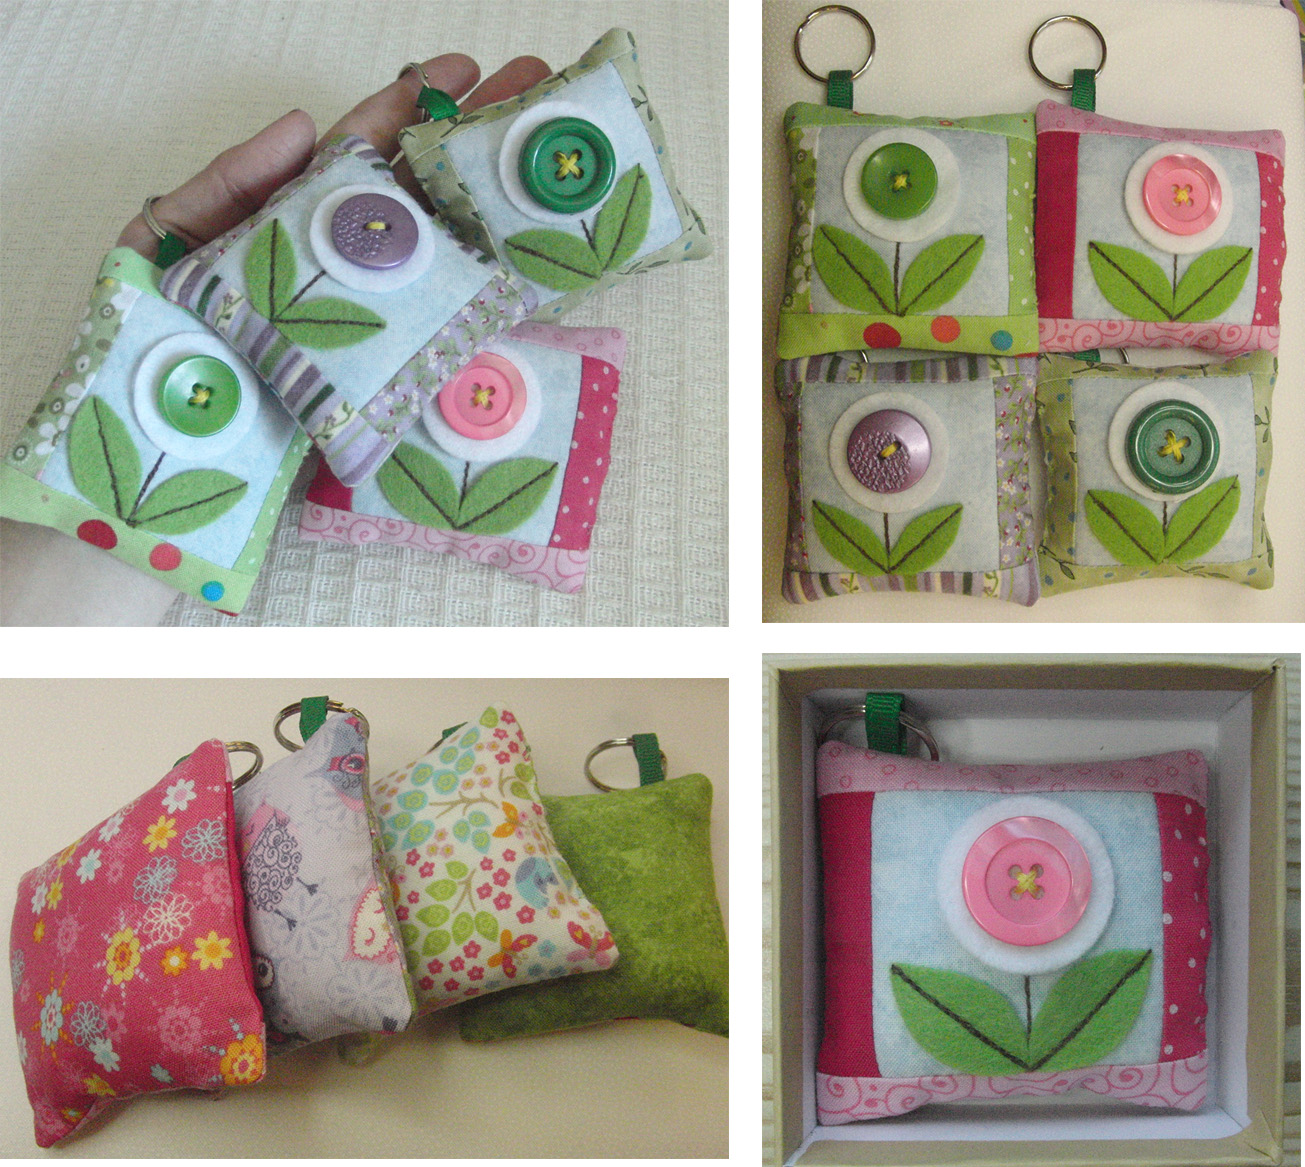 Small patchwork bag charm montage